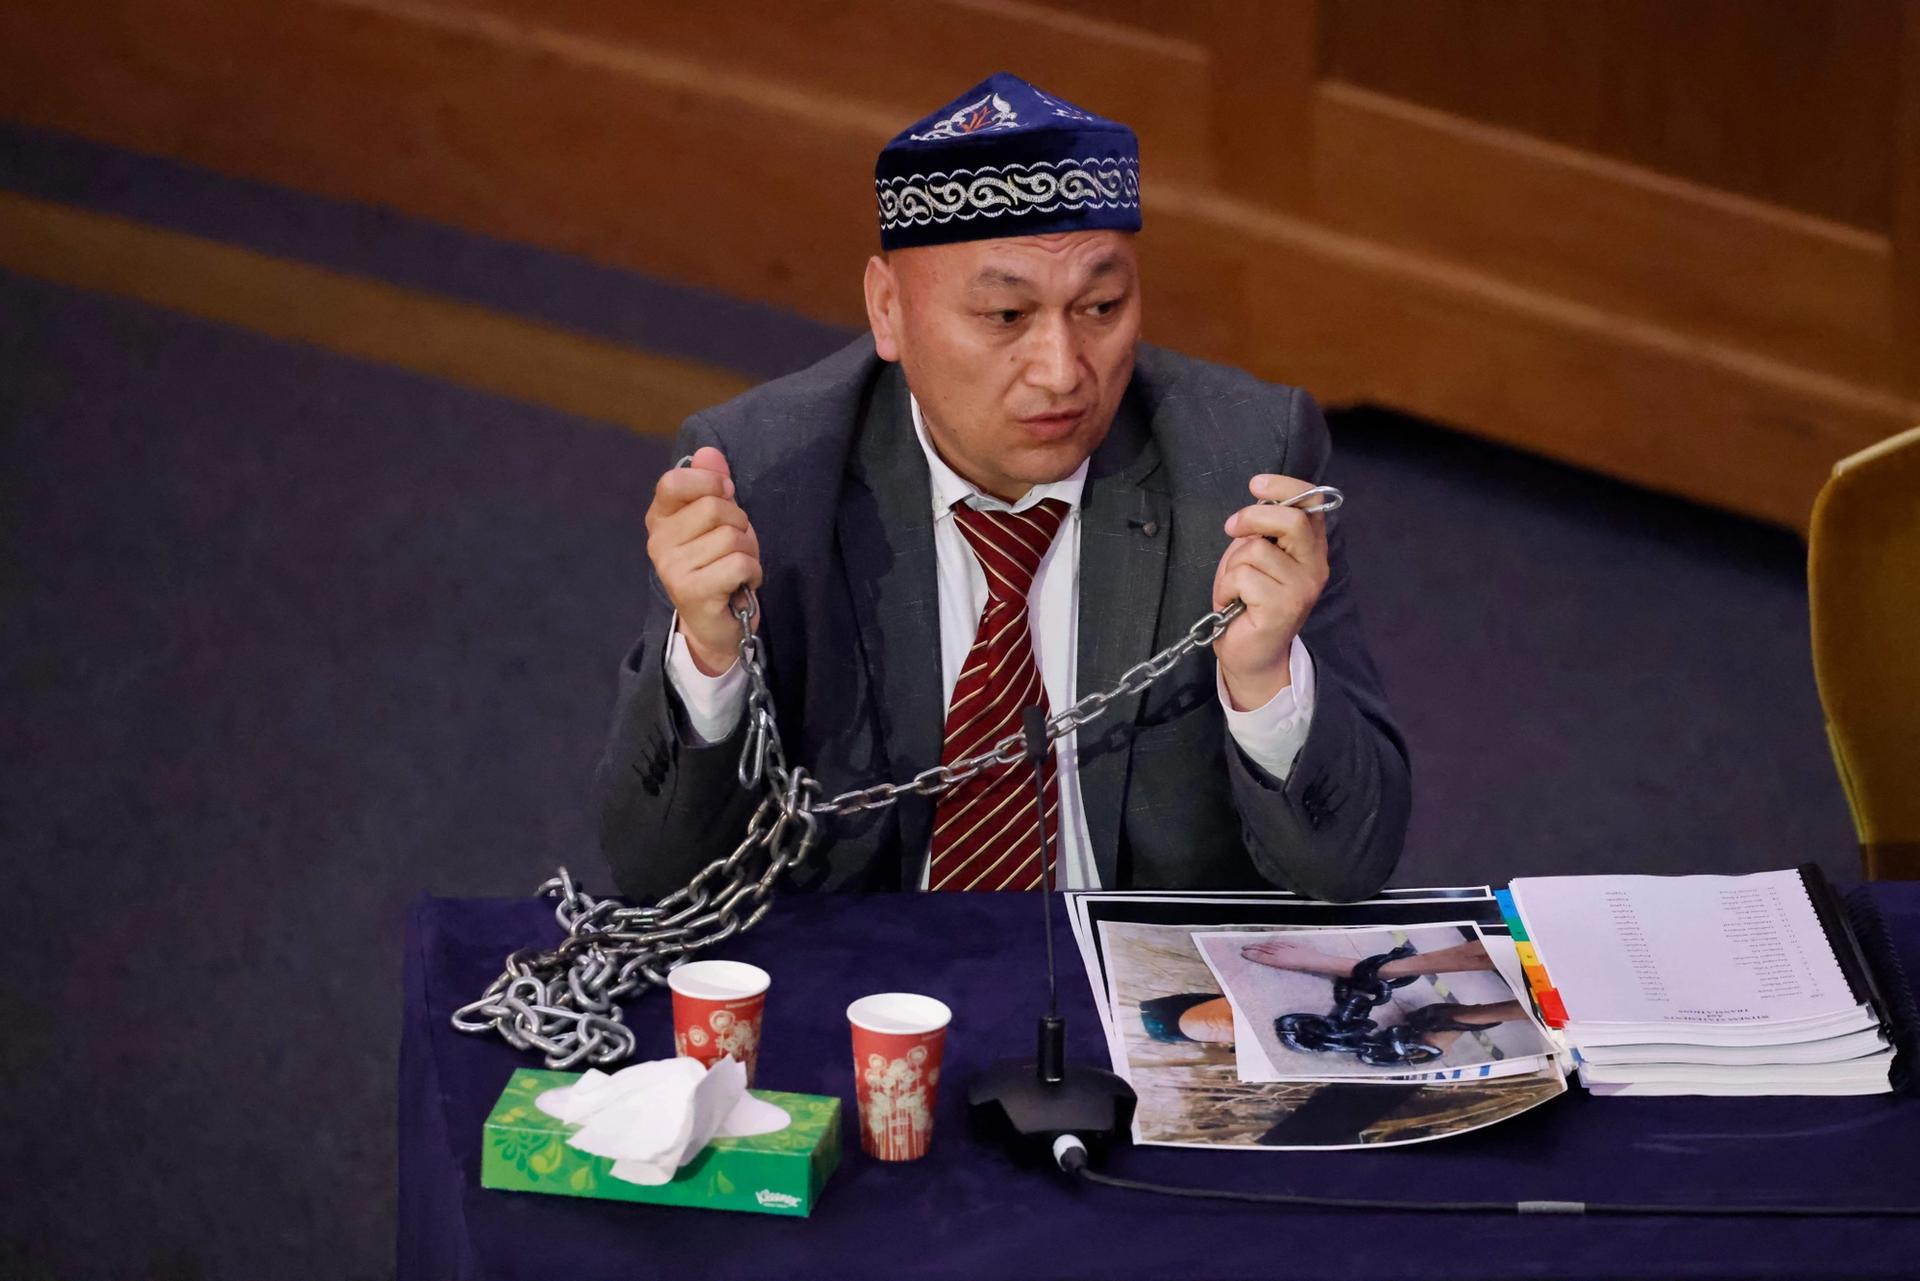 Kazakh-Uyghur witness Omir Bekali demonstrates how he was shackled in chains at a detention camp in Xinjiang as he speaks on the first day of hearings at the Uyghur Tribunal Photo: Tolga Akmen / AFP via Getty Images